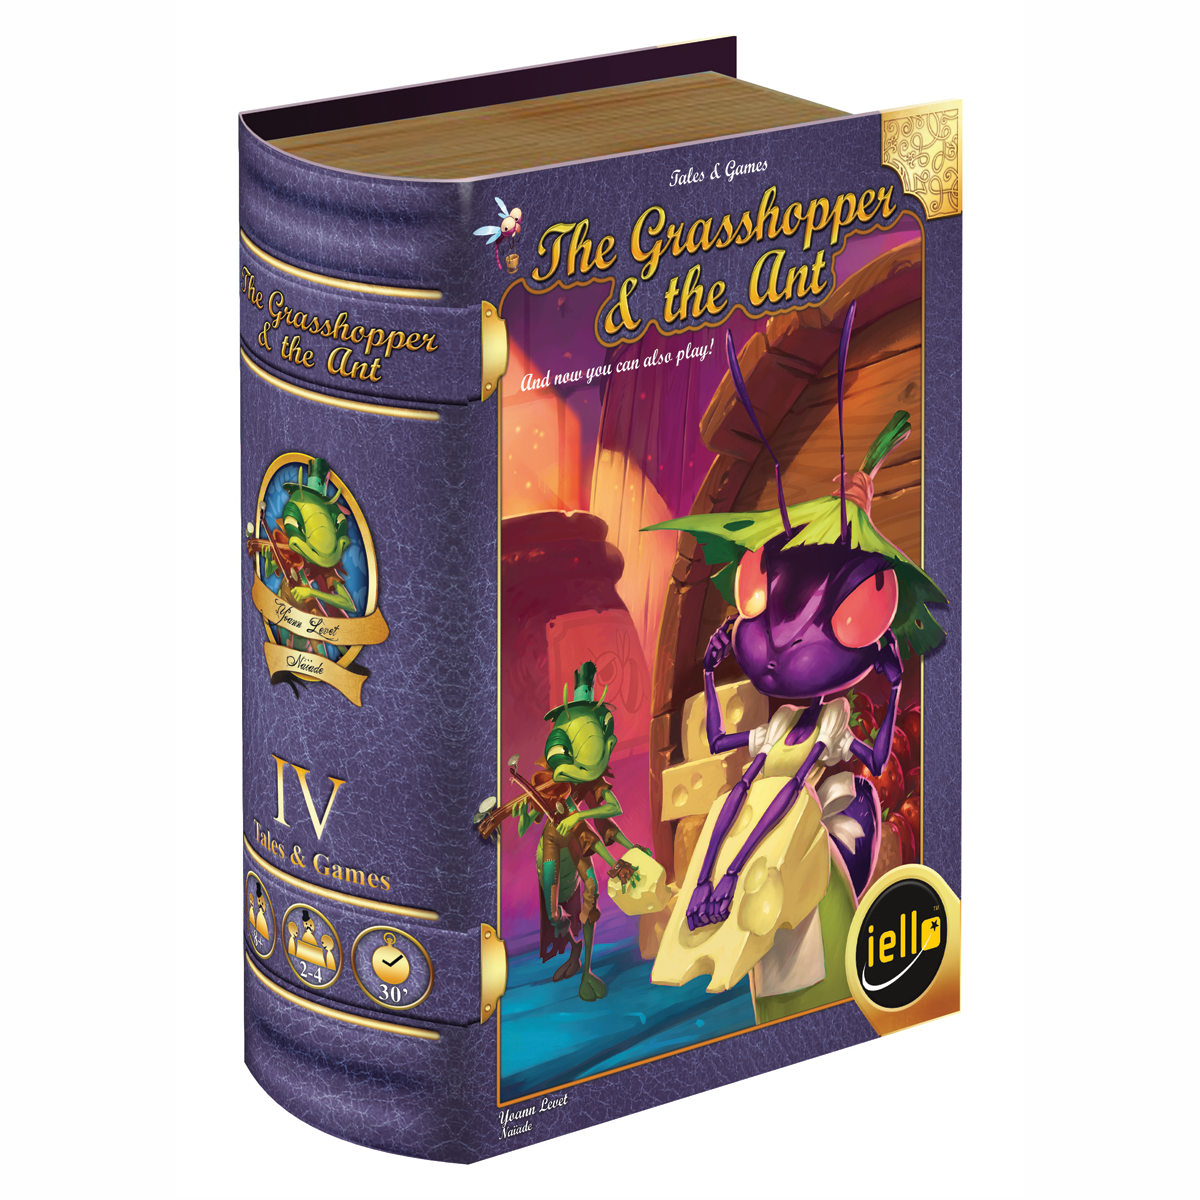 Tales Games Grasshopper Ant box